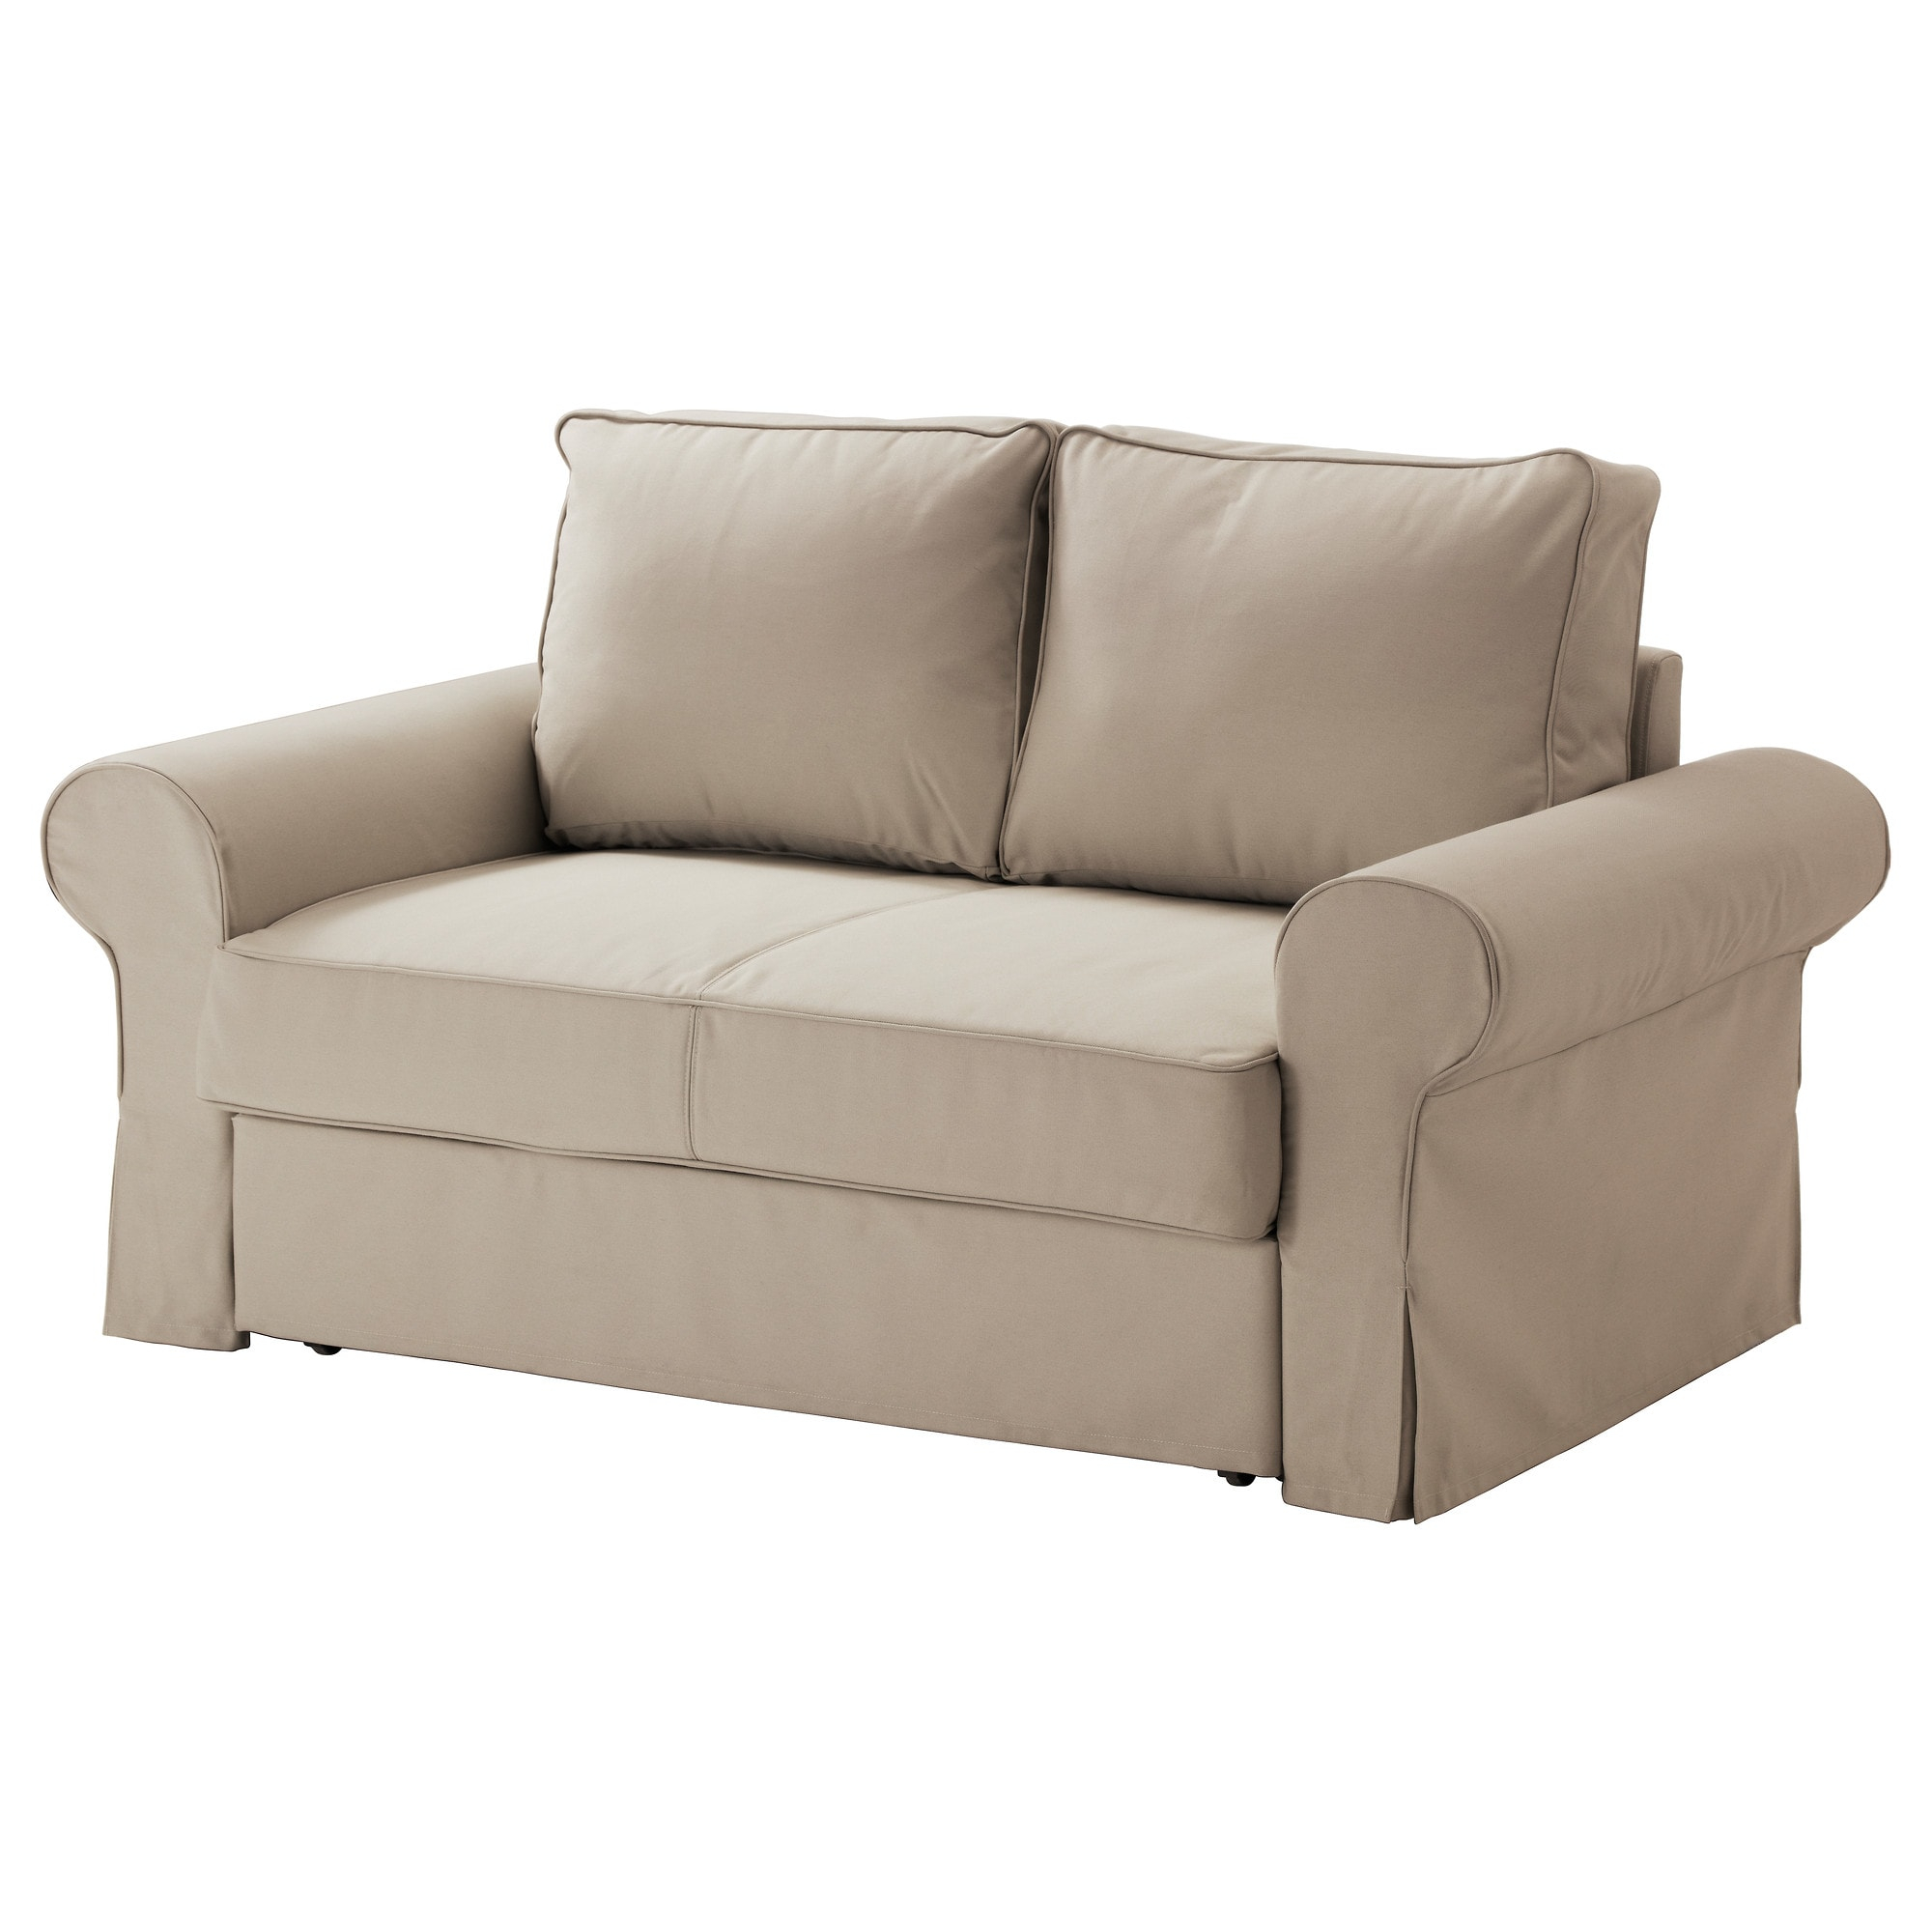 Backabro Two Seat Sofa Bed Ramna Beige – Ikea With Ikea Sofa Chairs (Image 2 of 25)